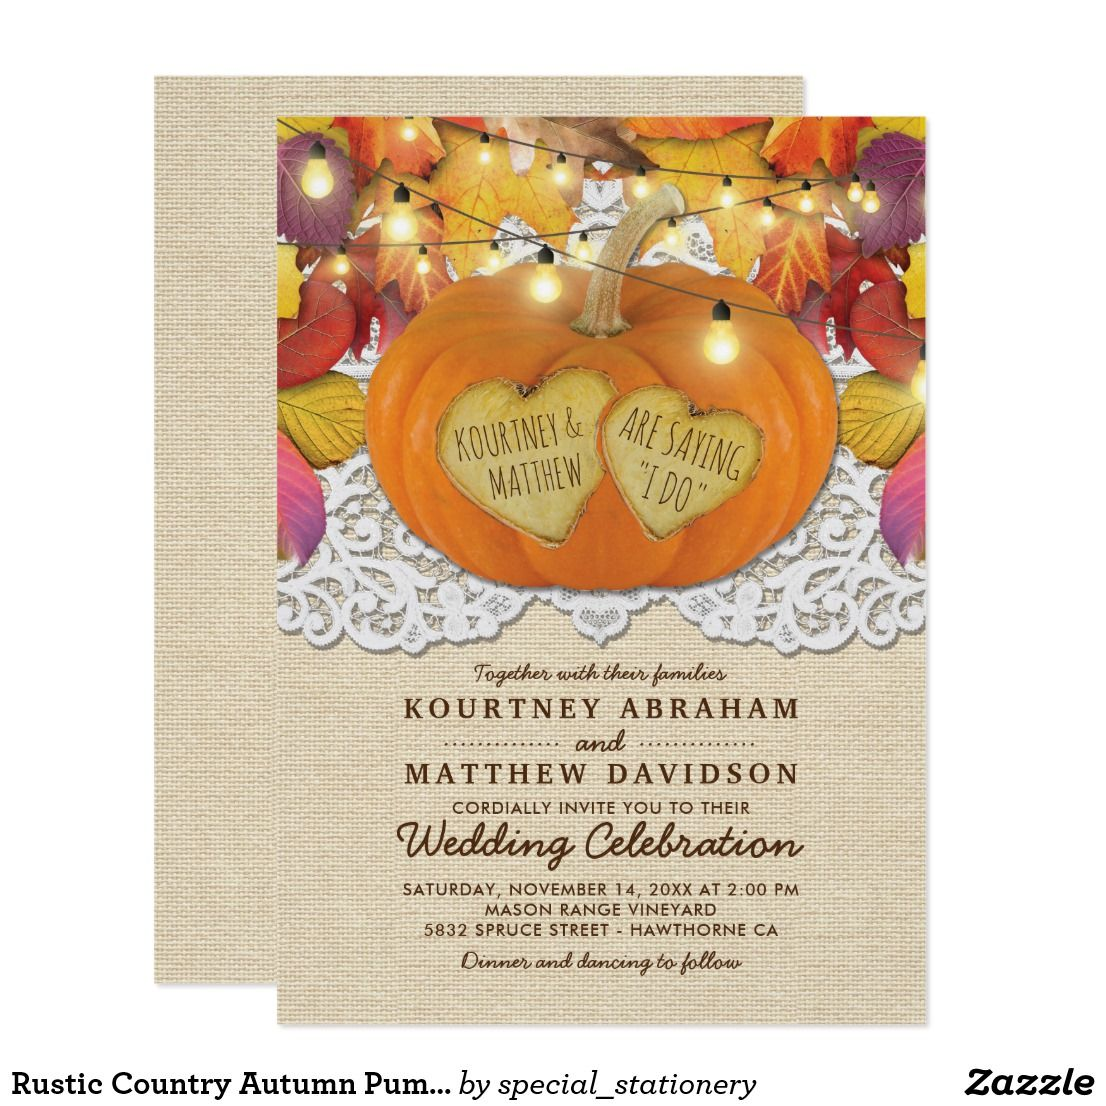 Rustic country autumn pumpkin lace wedding invitation wedding